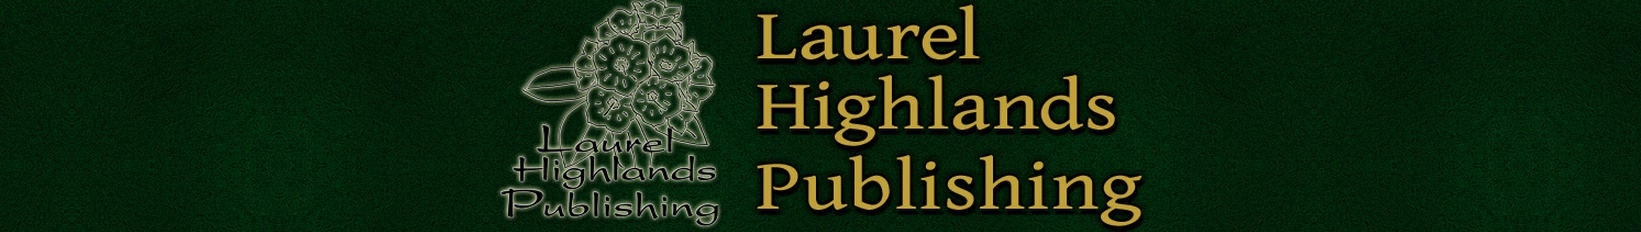 Laurel Highlands Publishing